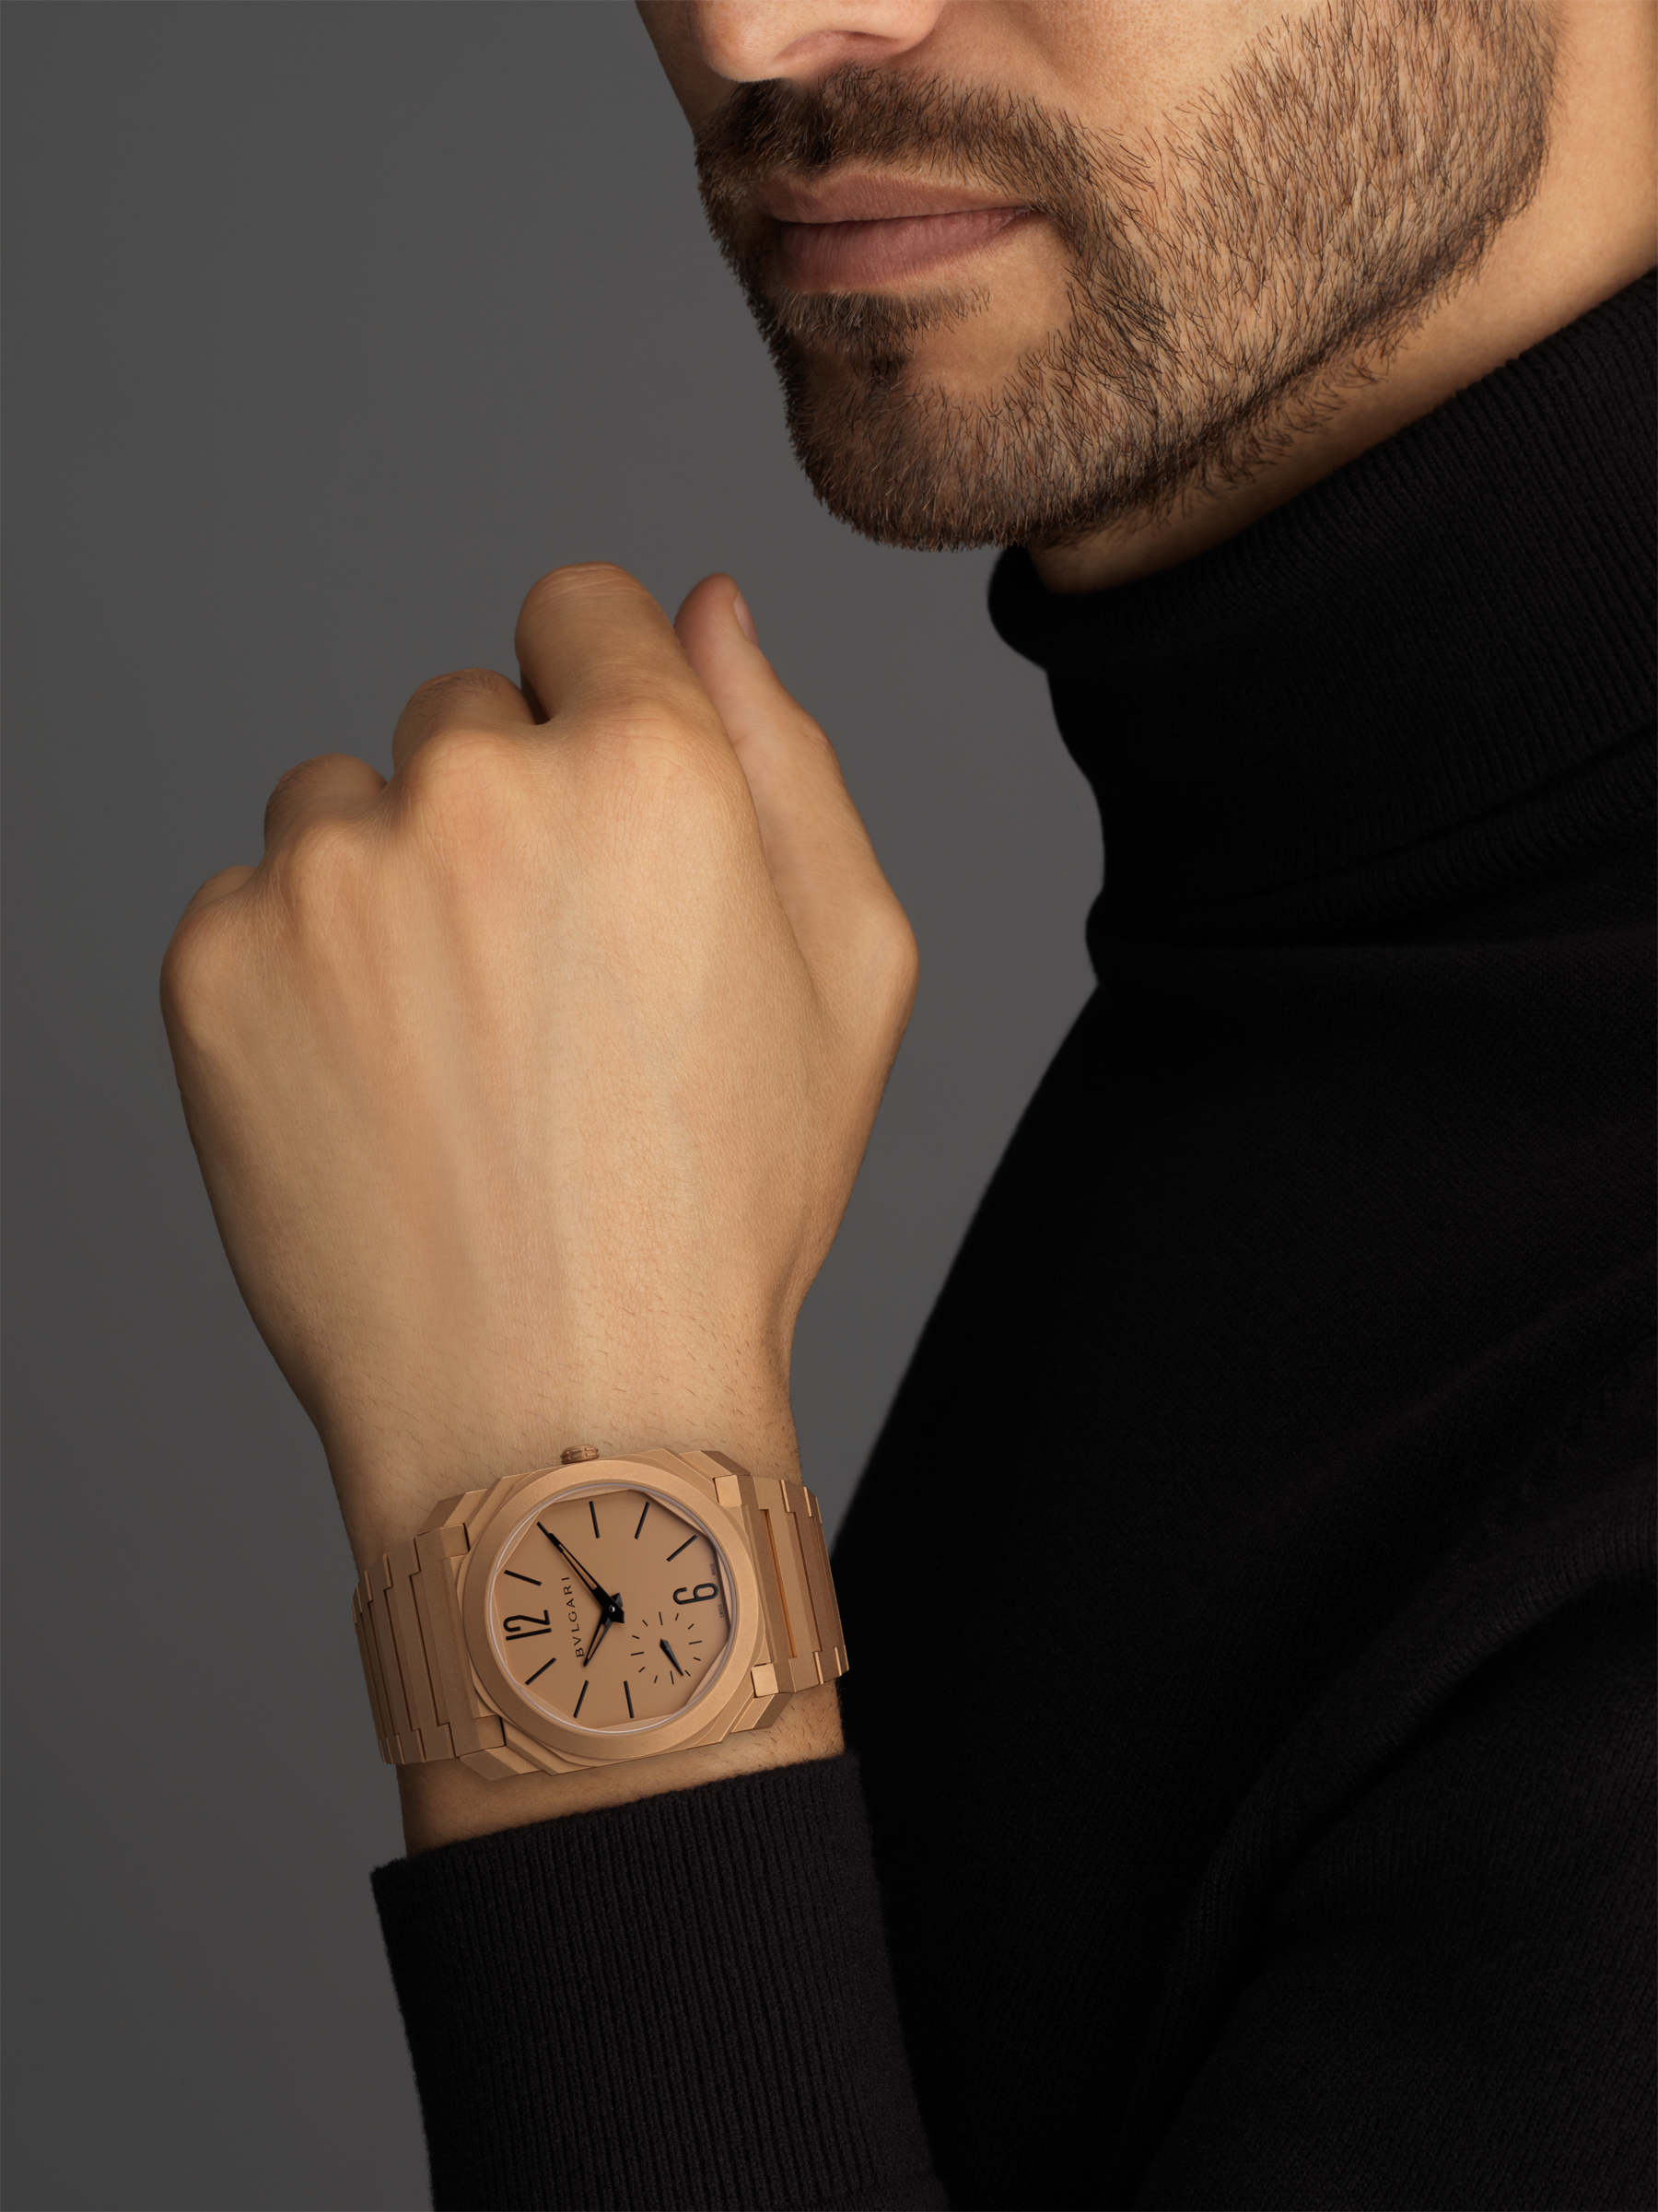 Octo Finissimo Automatic watch with mechanical manufacture movement, automatic winding, platinum microrotor, small seconds, extra-thin sandblasted 18 kt rose gold case and bracelet, and 18 kt rose gold dial 102912 image 5